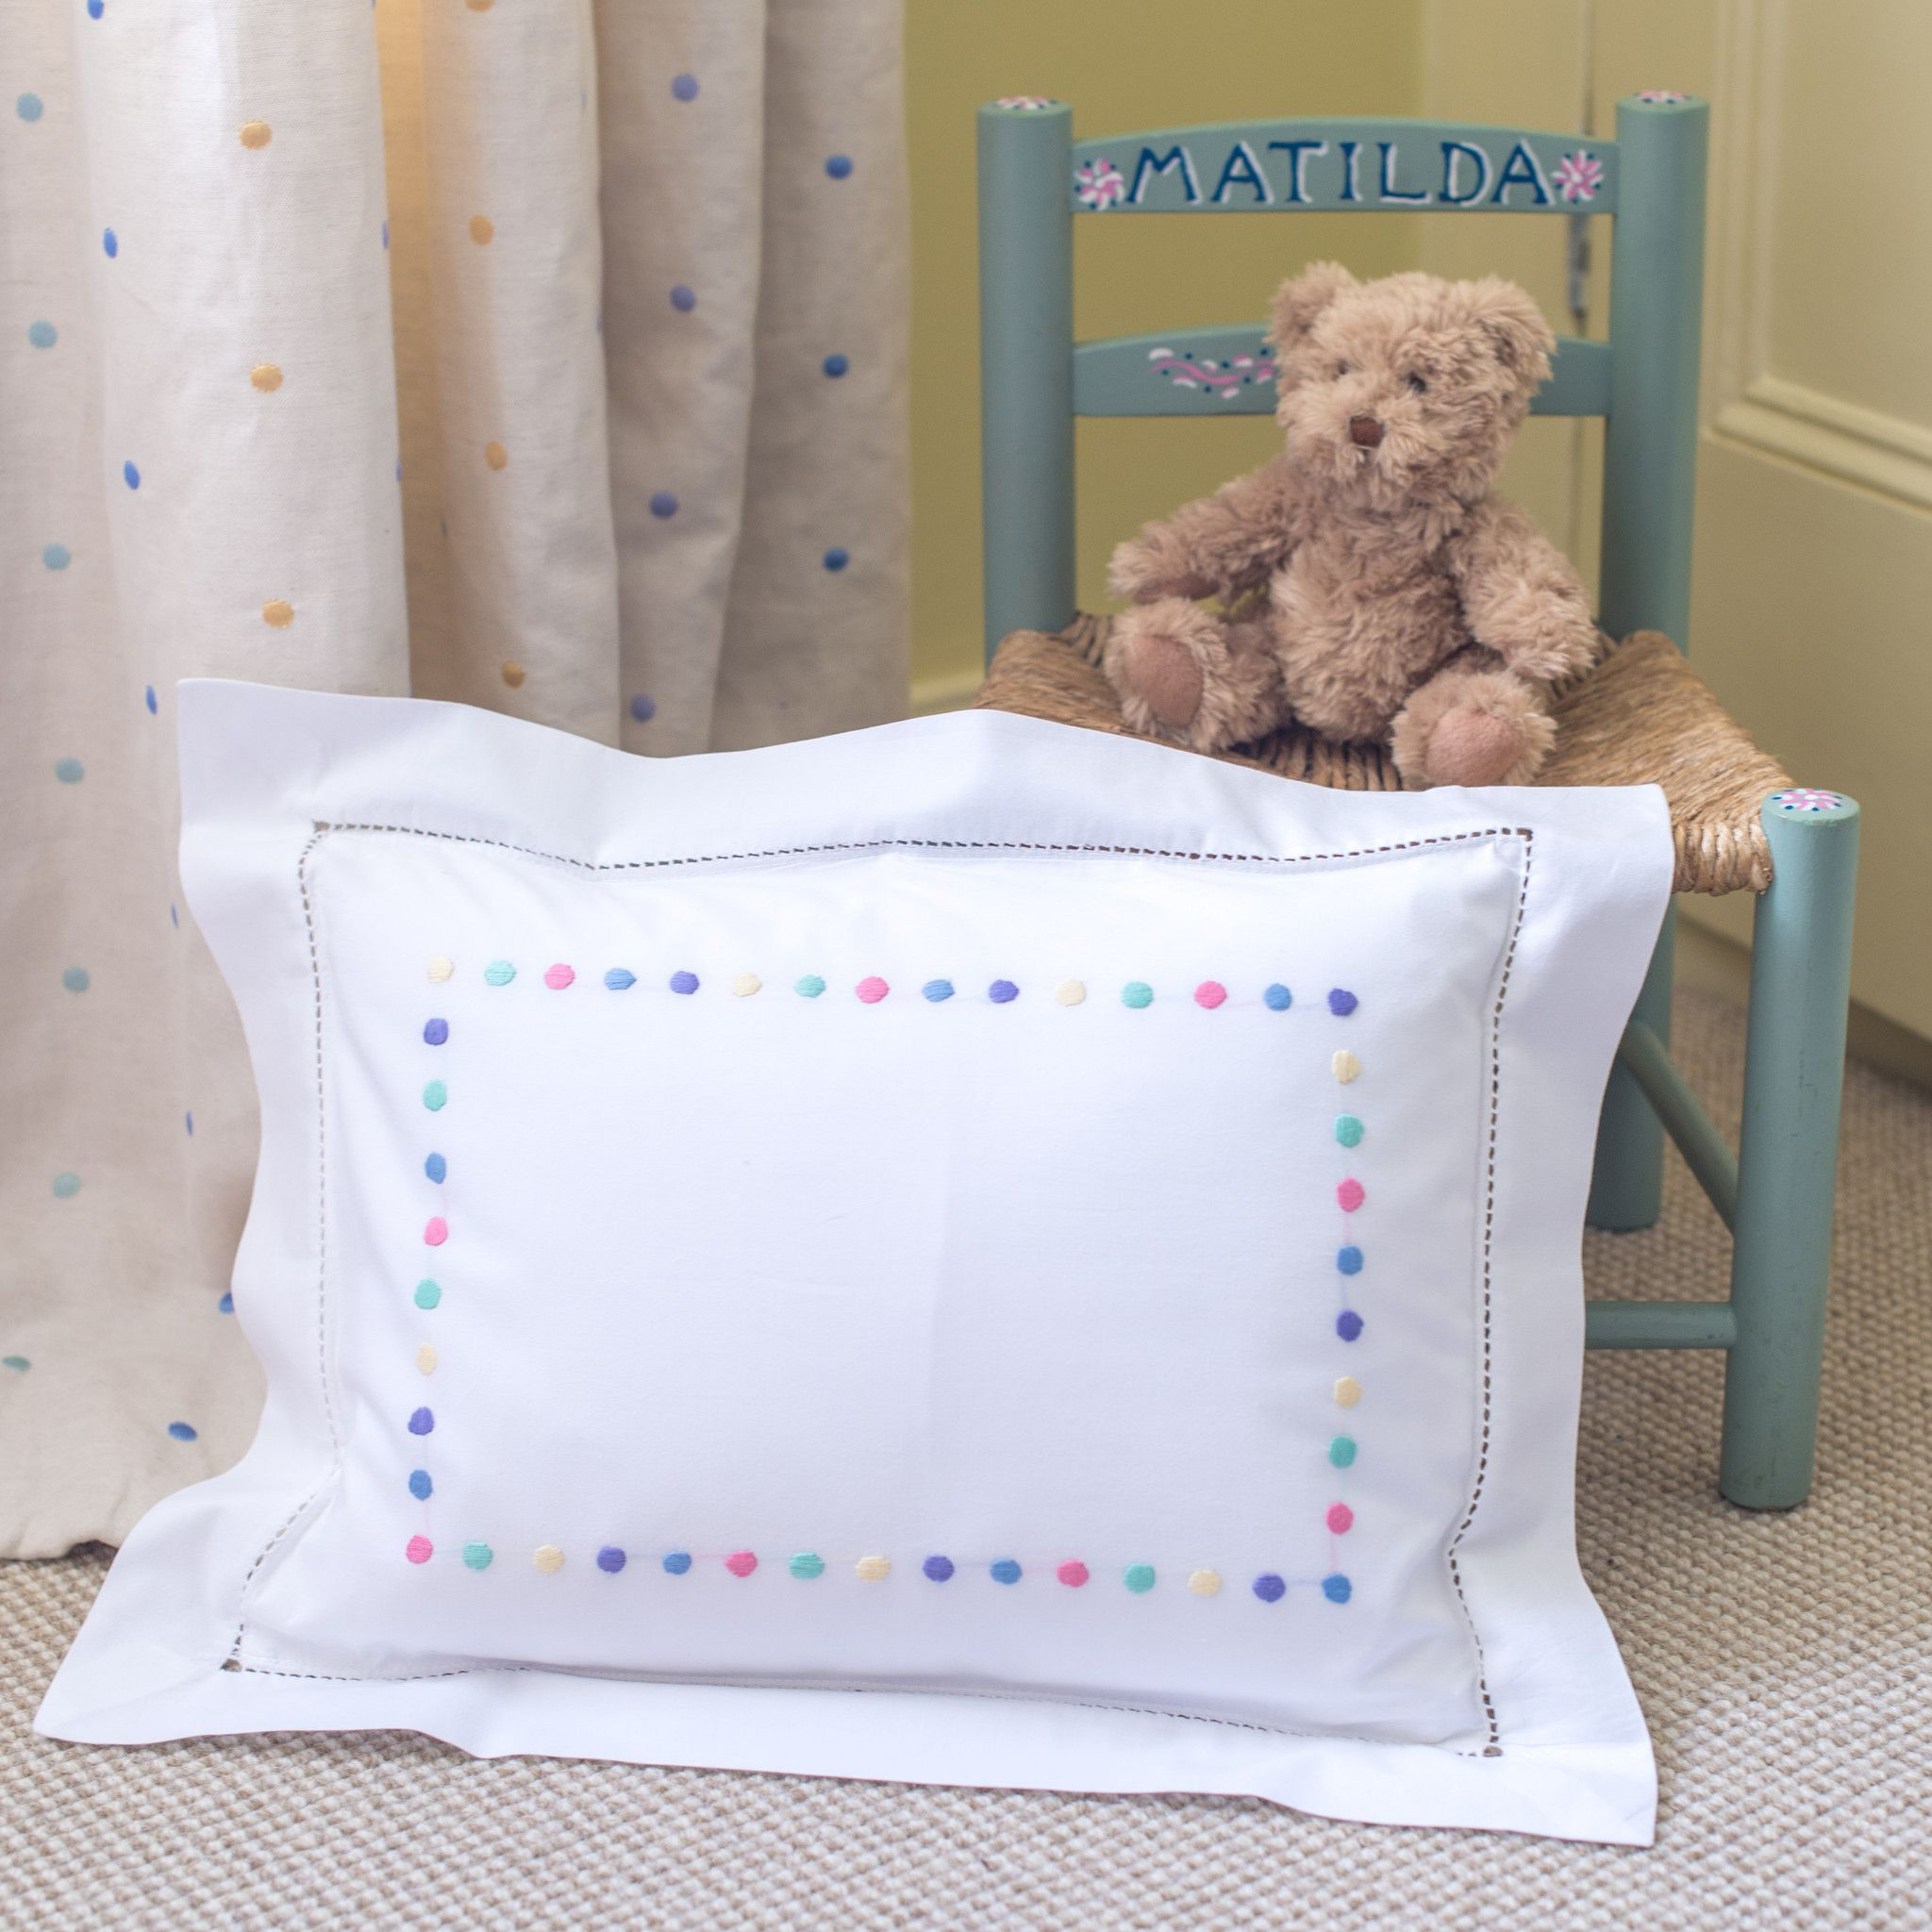 BabyToddler Pillow with Pillowcase